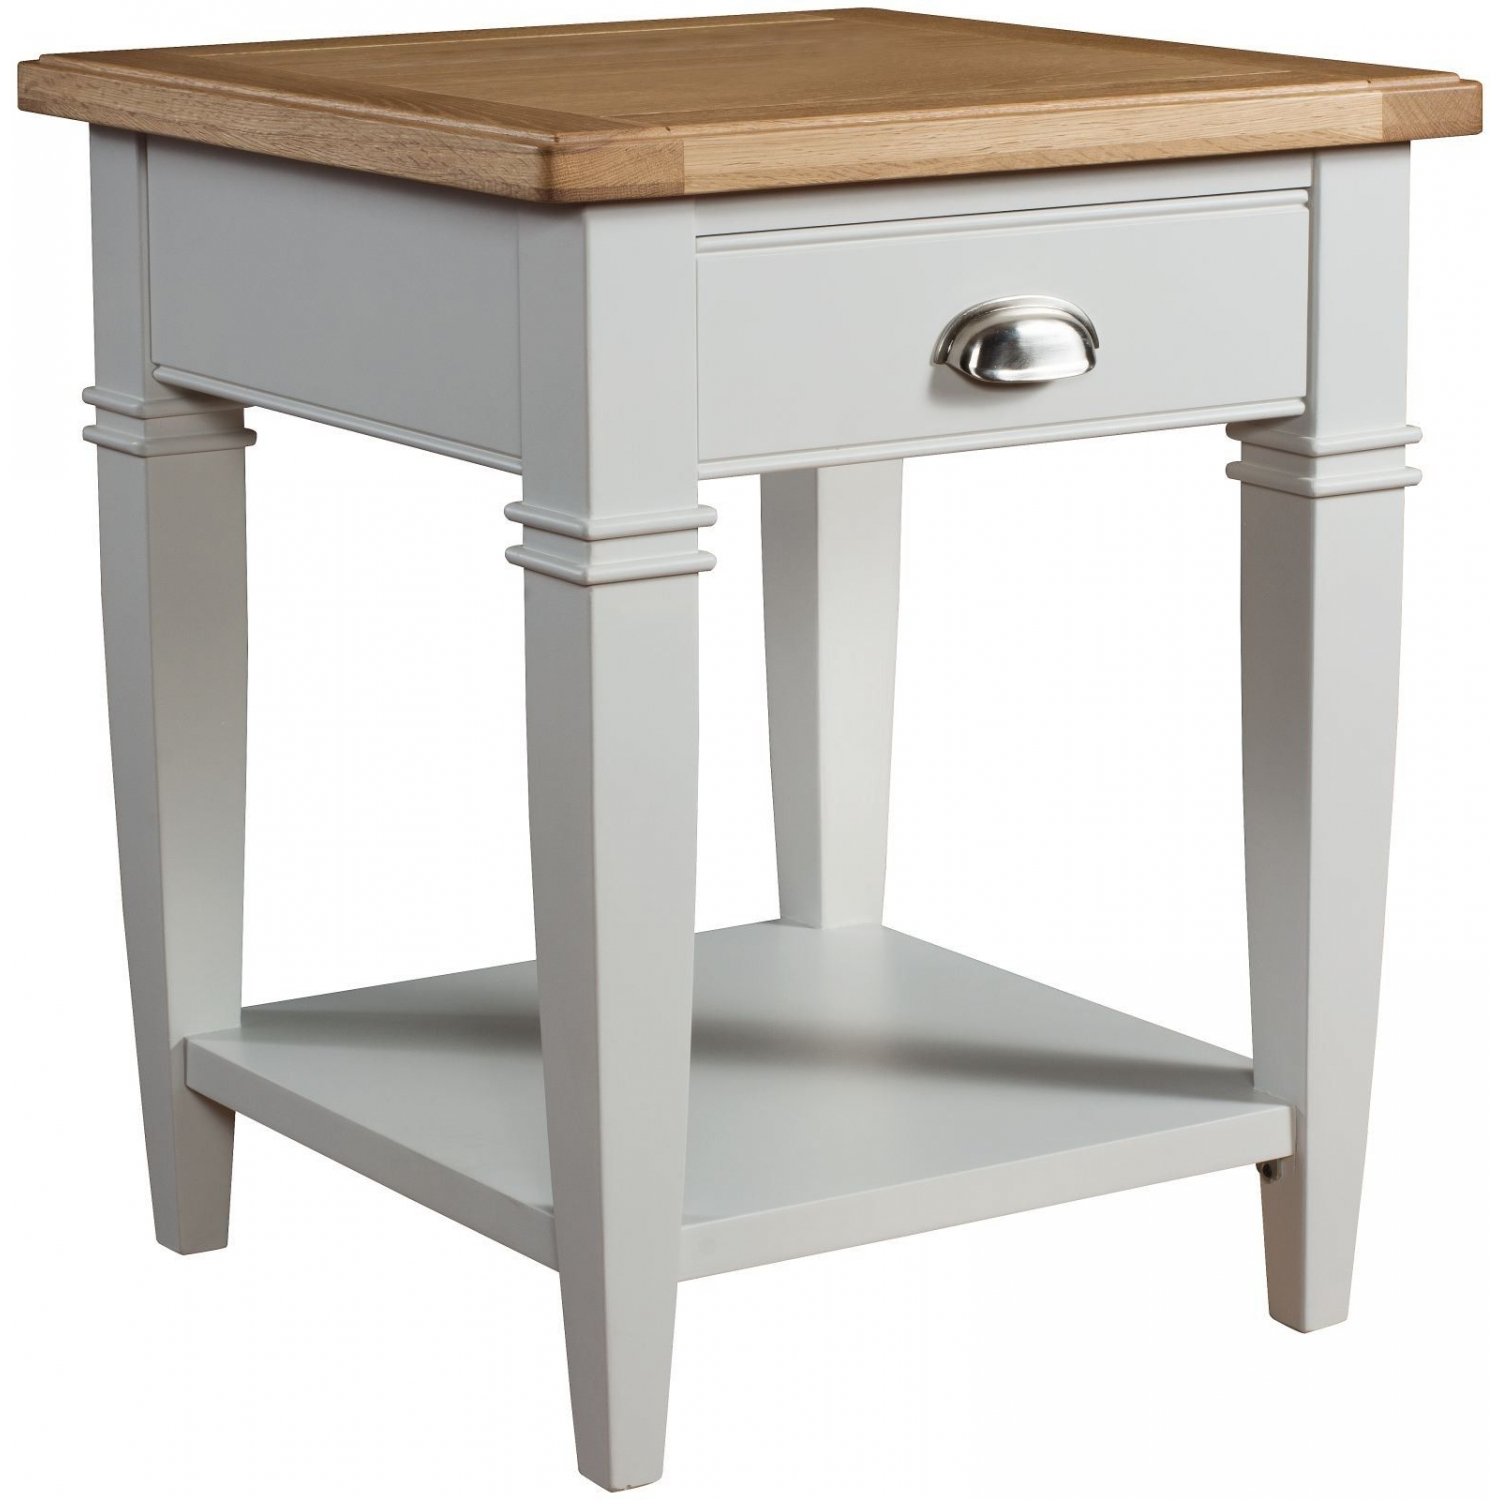 Dillon Oak Grey Painted Furniture Side End Lamp Table  Ebay. Kitchen Ideas For White Cabinets. Kitchen Cabinet Pinterest. Painting Kitchen Cabinet Ideas. Do You Install Kitchen Cabinets Before Flooring. Kitchen Cabinet Door Hinges Types. Painting Kitchen Cabinets Cost. Annie Sloan Chalk Paint Kitchen Cabinets. General Finishes Gel Stain Kitchen Cabinets